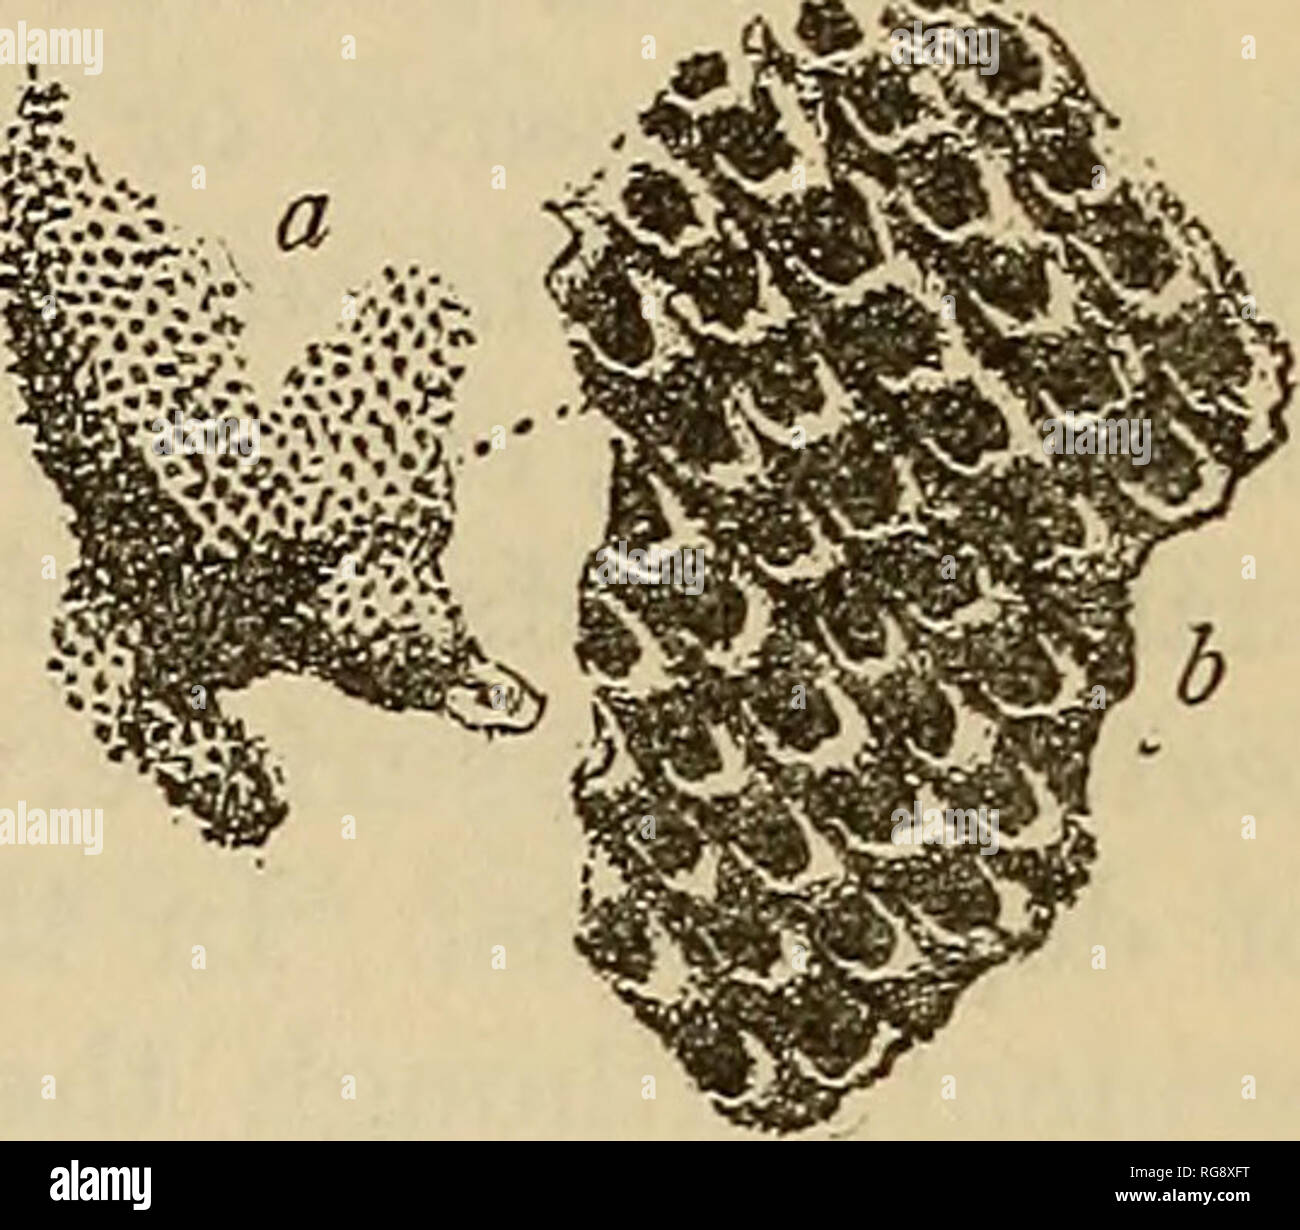 """. Bulletin - United States National Museum. Science. EARLY PALEOZOIC BEYOZOA OF THE BALTIC PROVINCES, 85 C(ELOCLEMA LACINIATUS (Eichwald). Text fig. 25. Ccenites laciniatus Eichwald, Letheea Rossica, vol. 1, 1860, p. 459, pi. 27, fig. 9. Eichwald has given two figures, here reproduced, of a ceramopo- roid bryozoan from the ''calcaire a schiste argileux inflammable,"""" wliich I have little hesitancy in identifying as a species of CcdodeTna occurring in the Kuckers shale. His description cites the type-speci- men as an incrusting lamella with the surface irregularly undulating. The specimens  Stock Photo"""